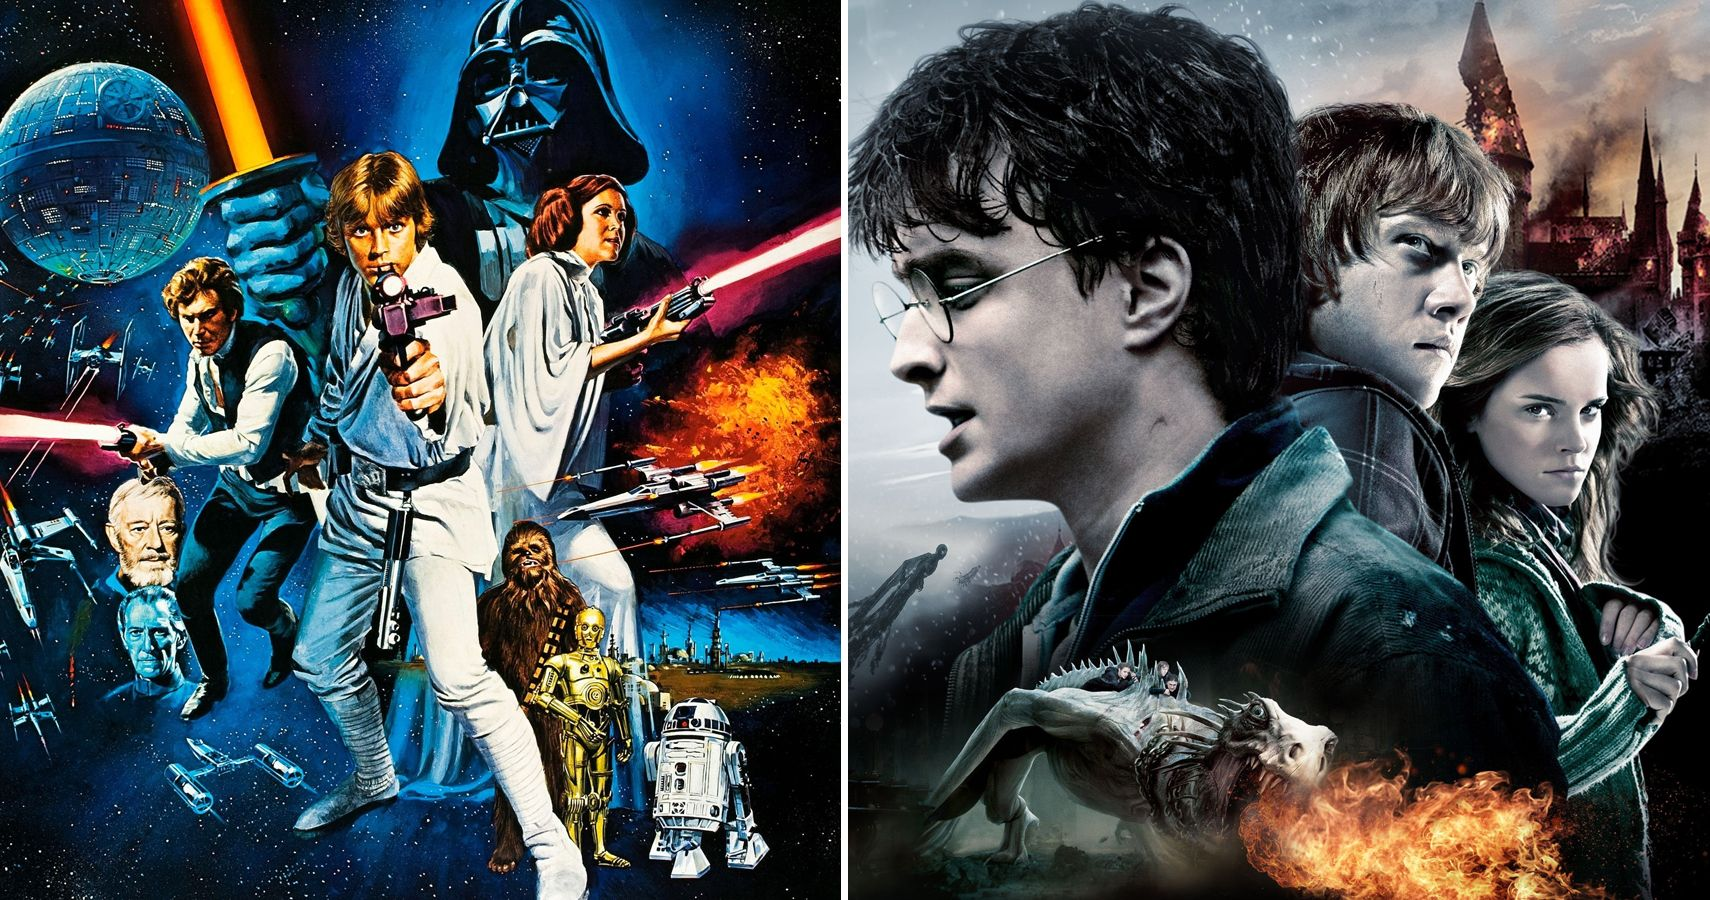 Star Wars Vs Harry Potter 10 Best Movies Ranked According To Rotten Tomatoes